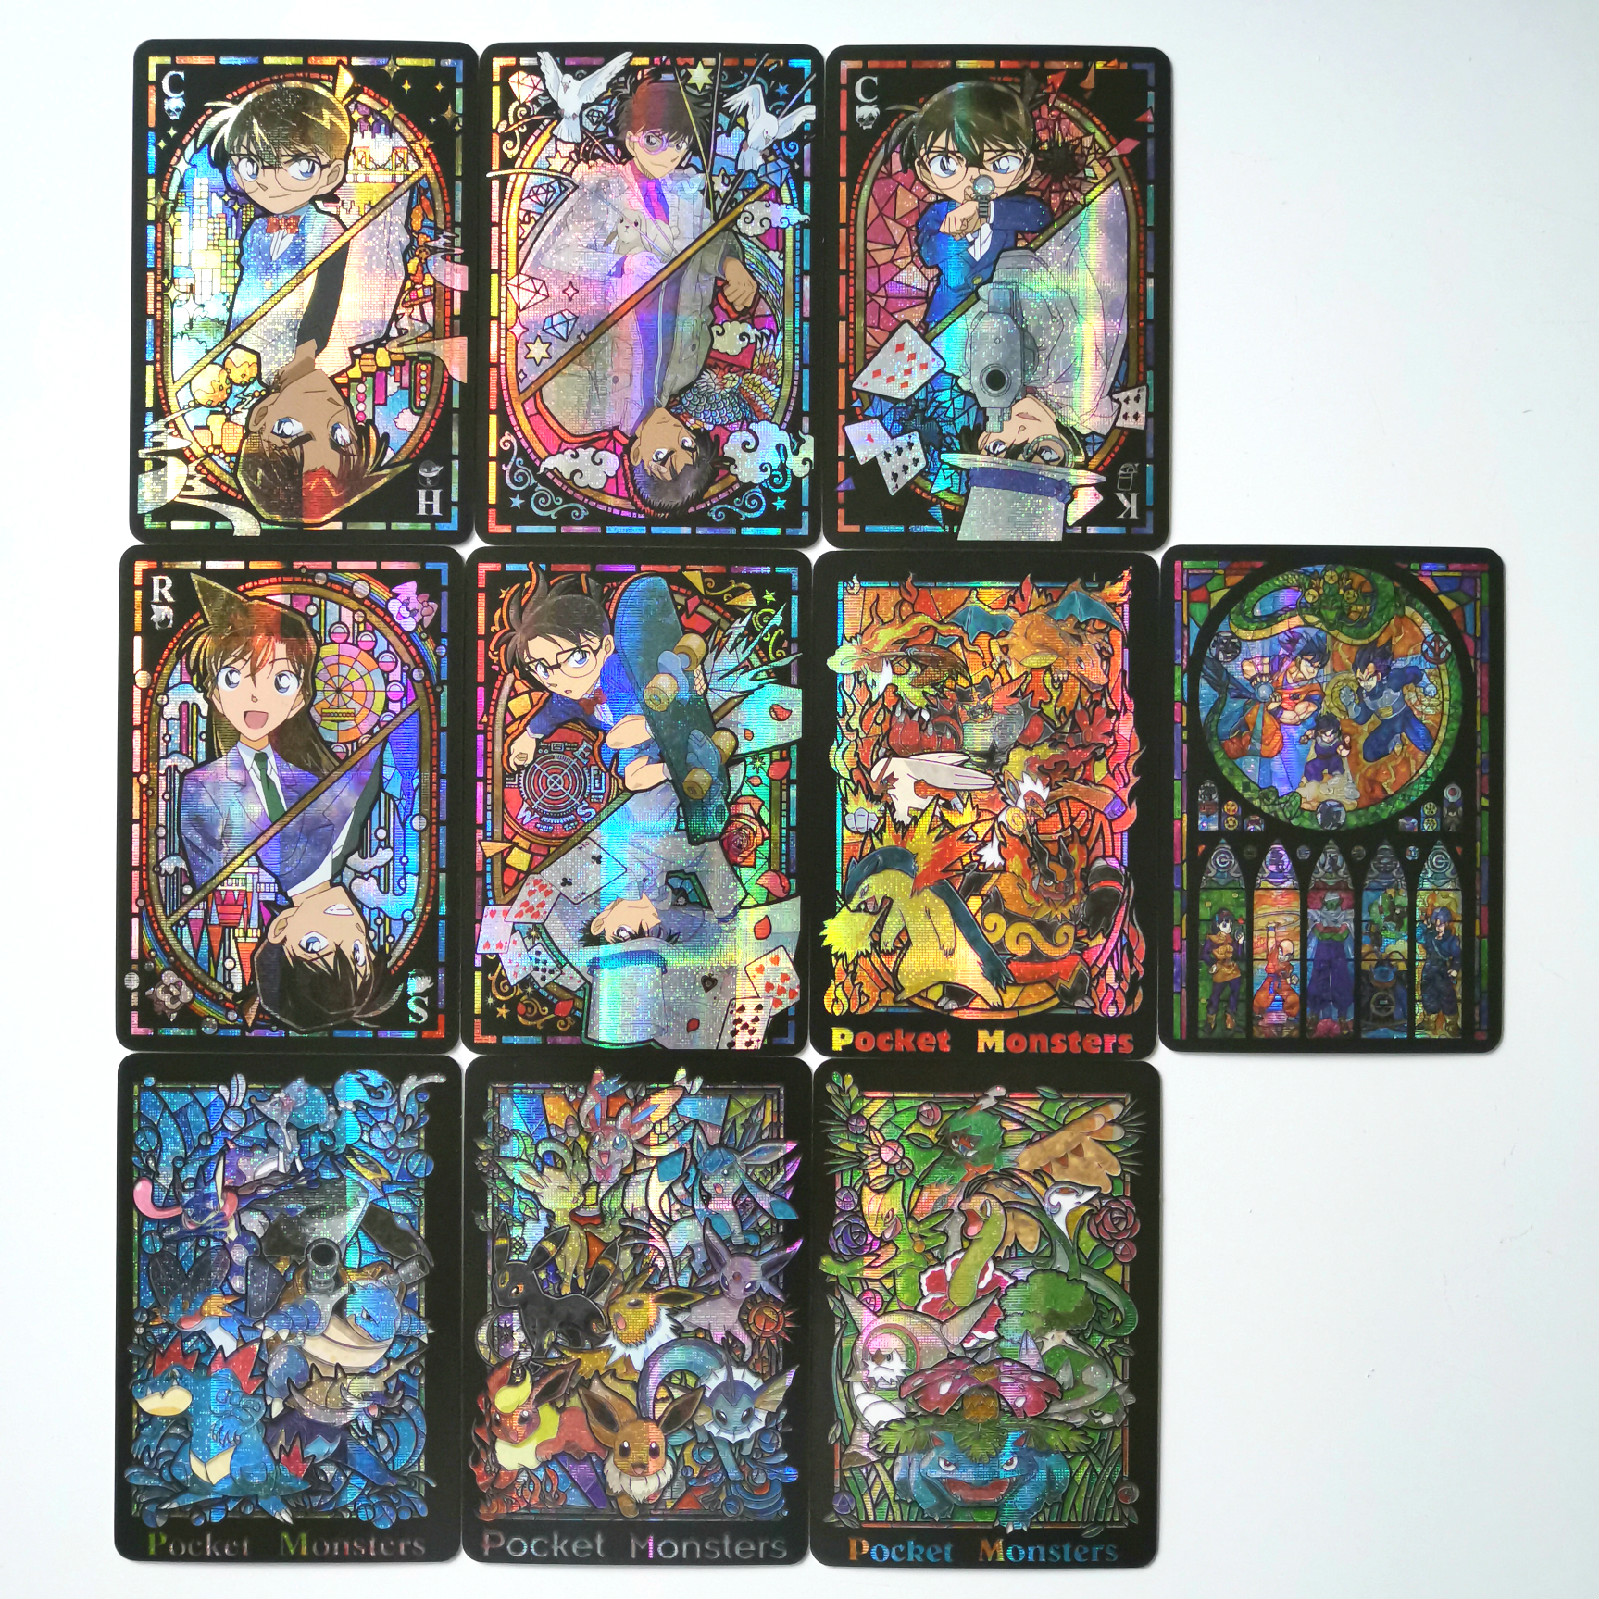 10pcs/set Detective Conan Dragon Ball Stained Glass Toys Hobbies Hobby Collectibles Game Collection Anime Cards